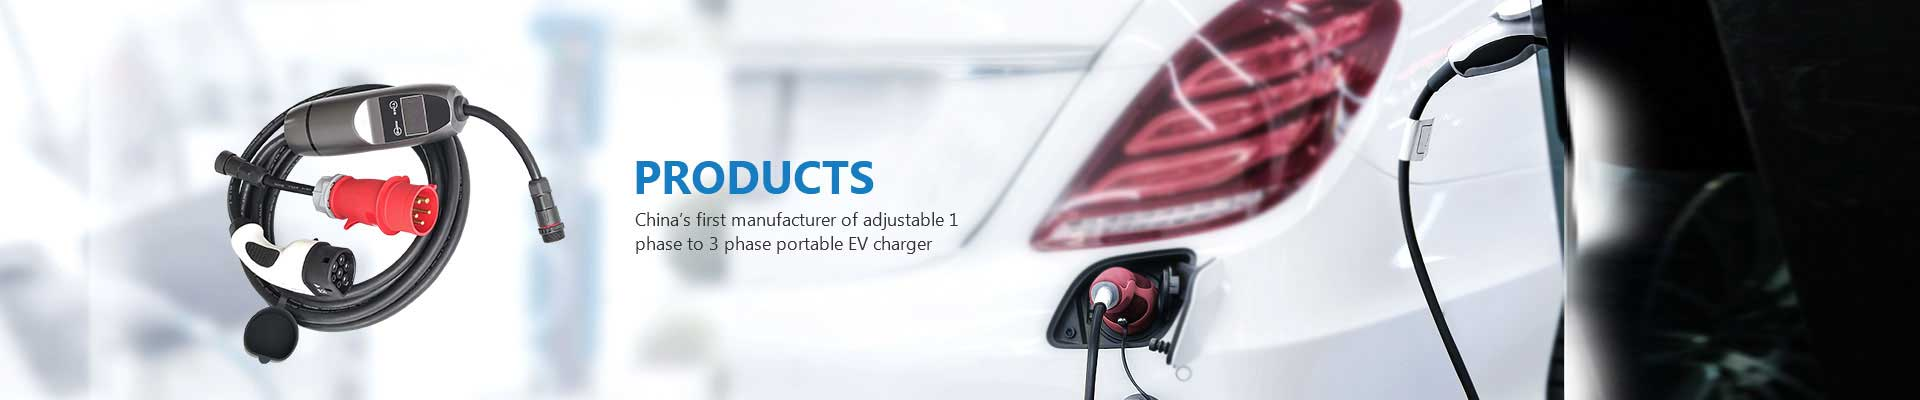 mobile ev charging station, portable ev charging station, 3 phase